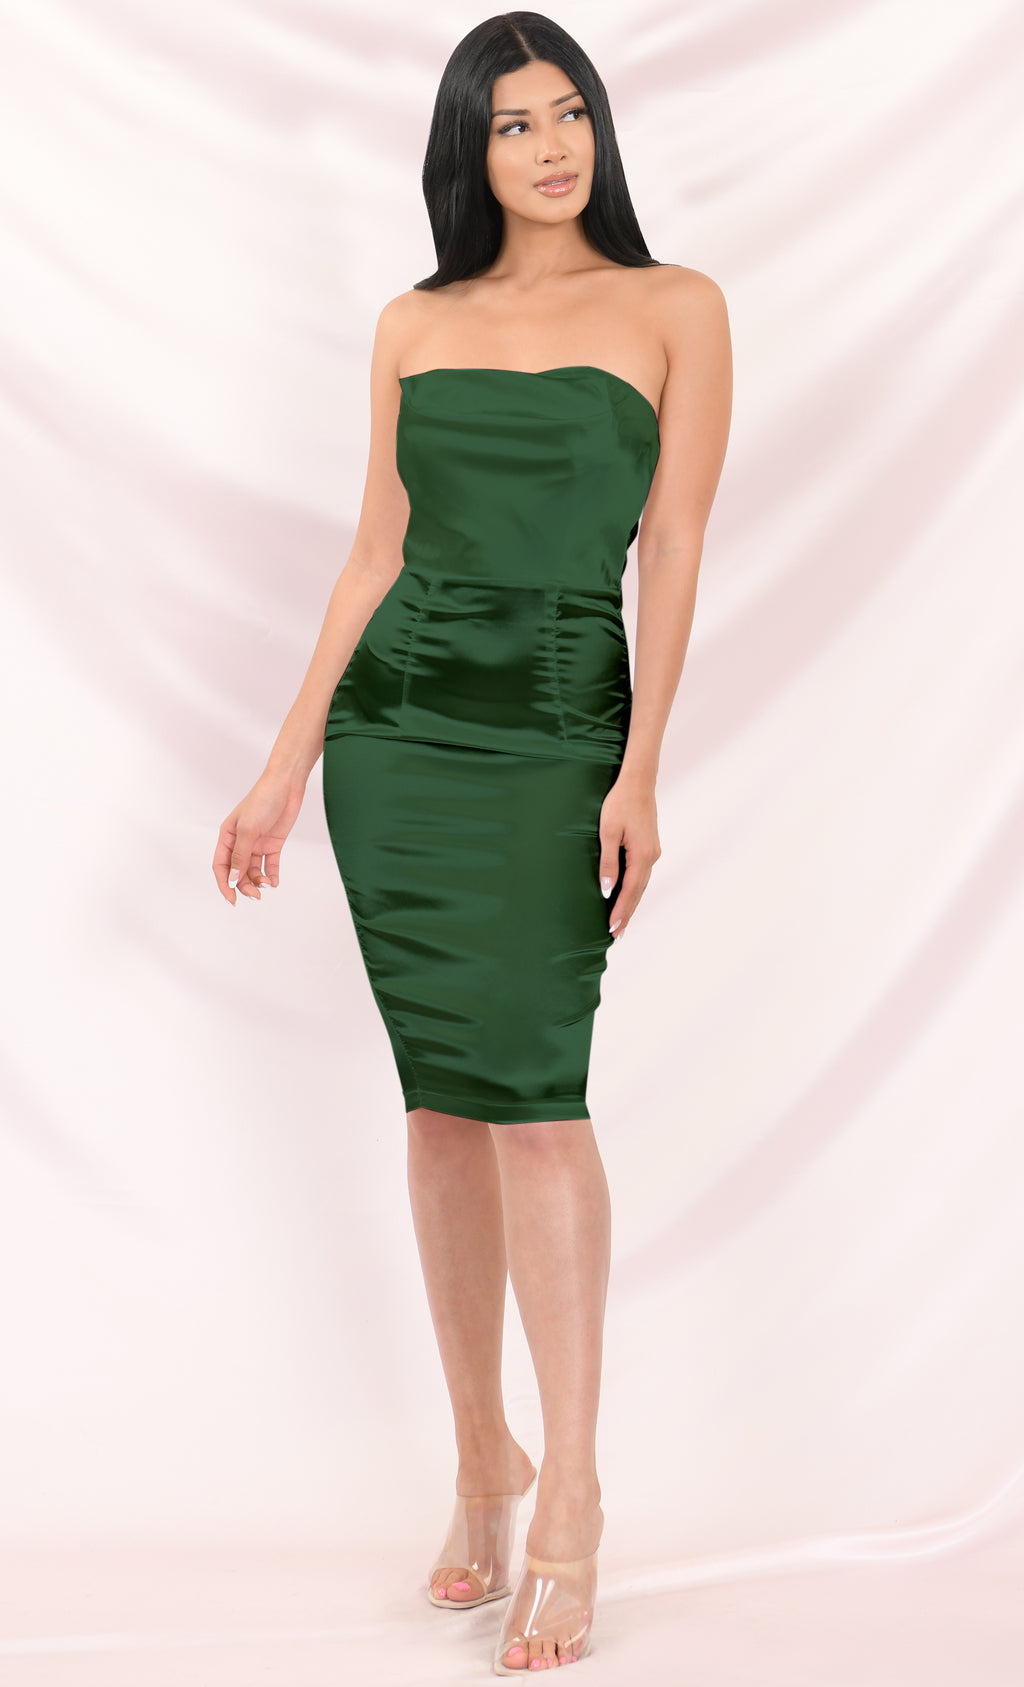 One More Night Emerald Green Satin Strapless Draped Sweetheart Neck Bodycon Midi Dress - 3 Colors Available